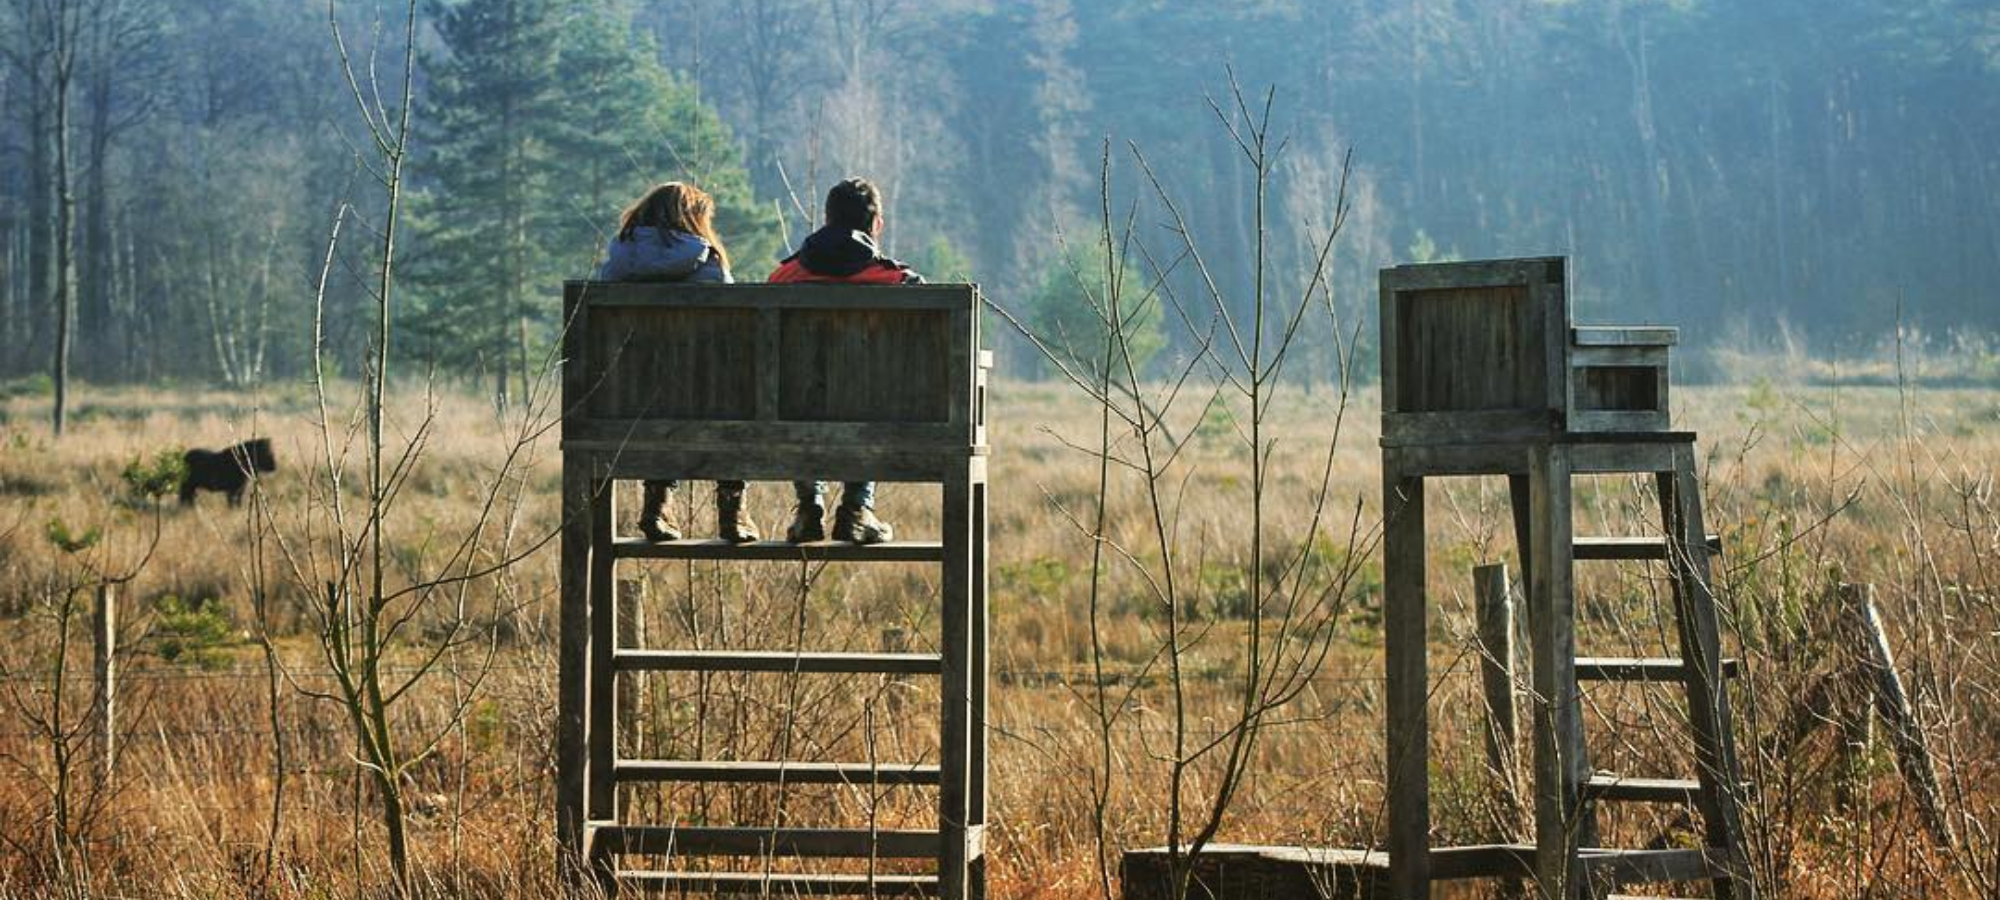 Two wooden lookout platforms rise above a grassy plain with tall trees in the background at Munsterbos nature reserve.